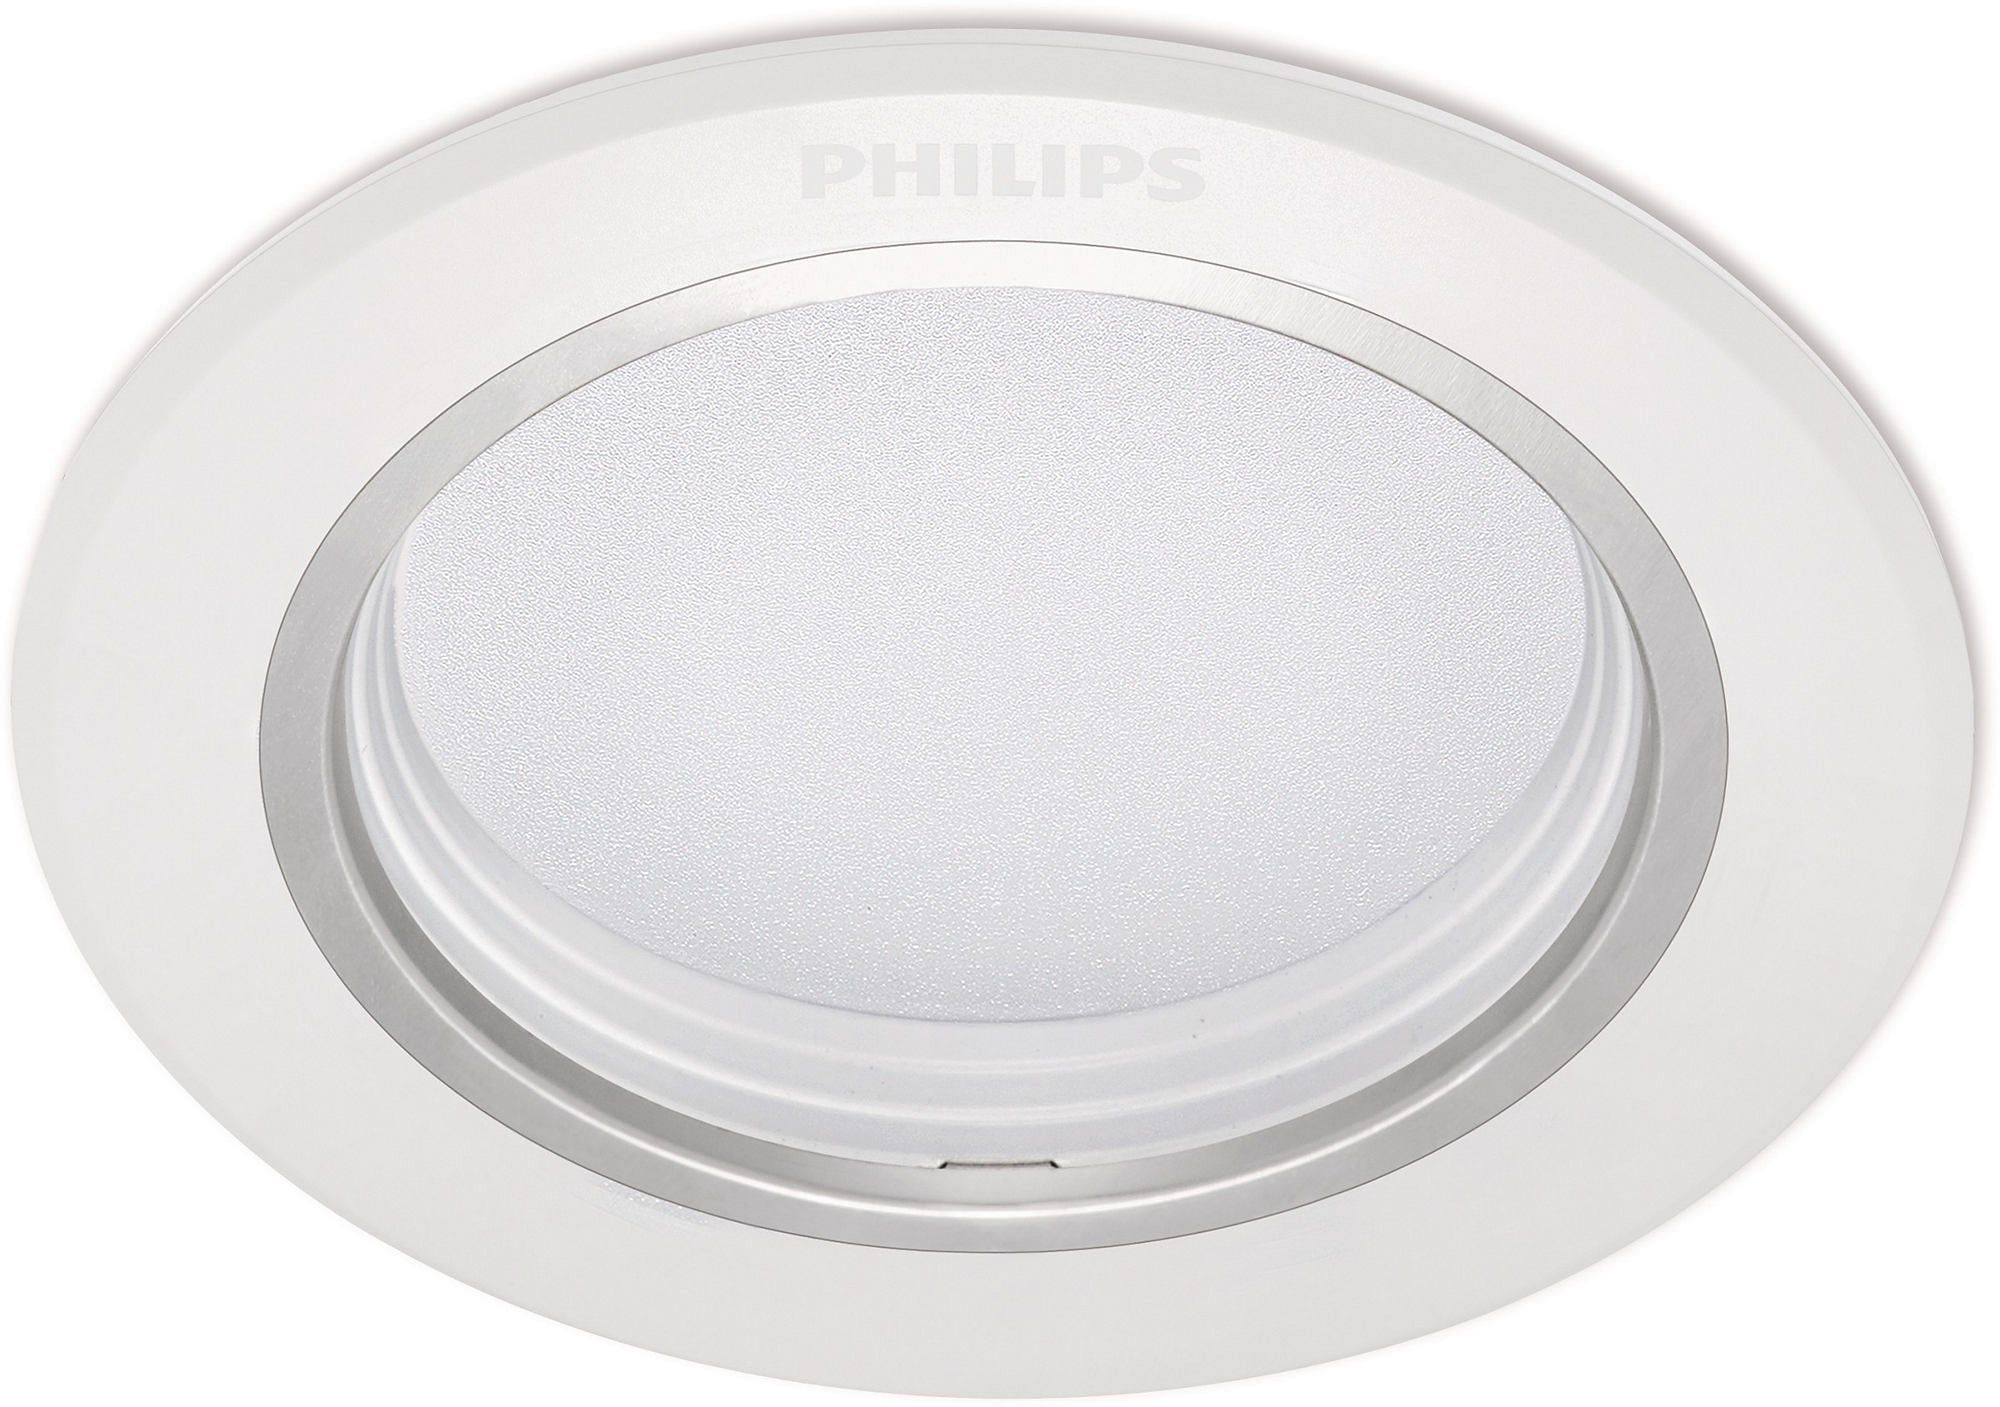 Philips LED Recessed Spot Light/Downlight (15x0.5W 6500K CoolDaylight)